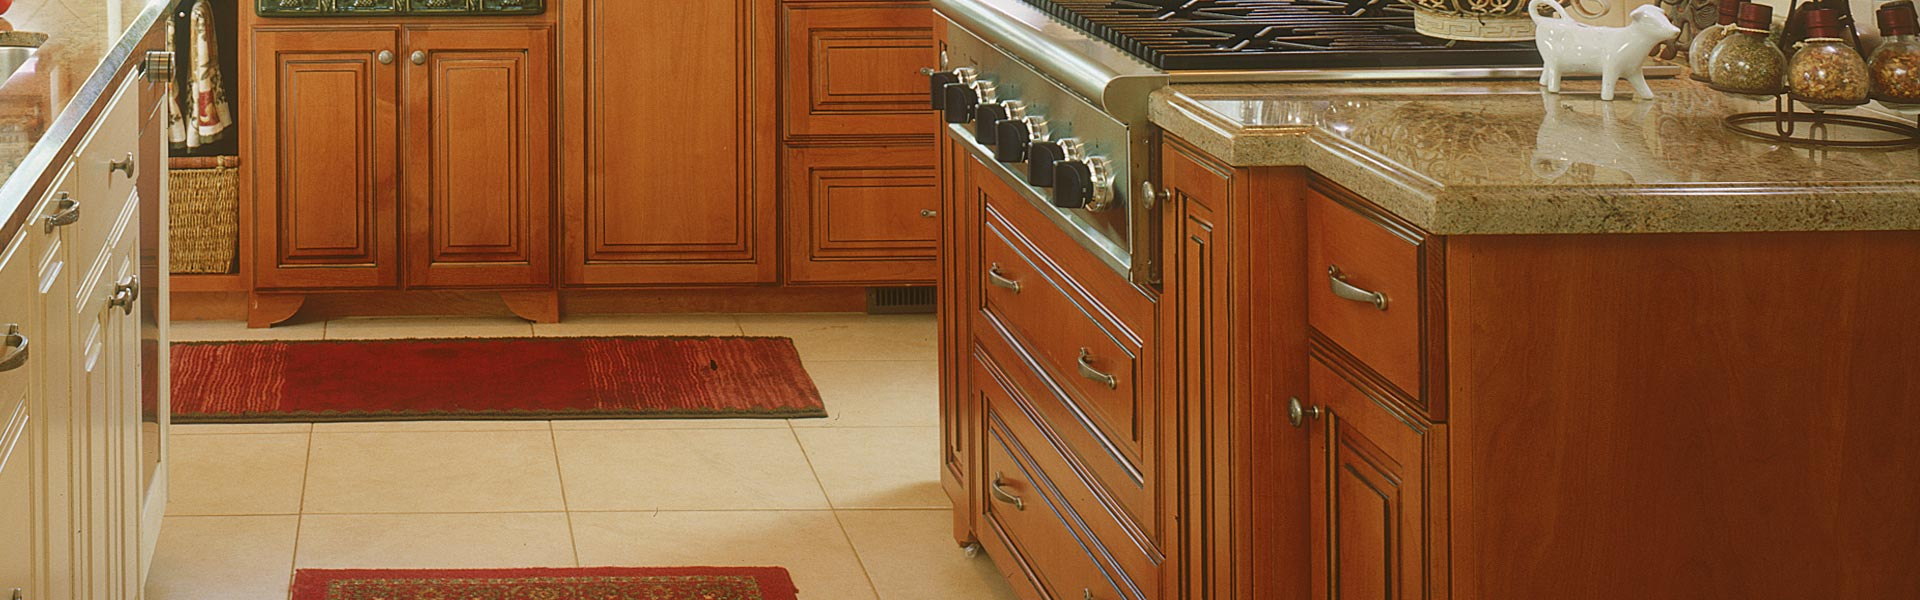 Face Frame Style Cabinets Are The Truest Form Of Traditional Cabinetry  Dating Back Many Years Ago. Face Frame Style Cabinets Make Versatile  Cabinetry Which ...